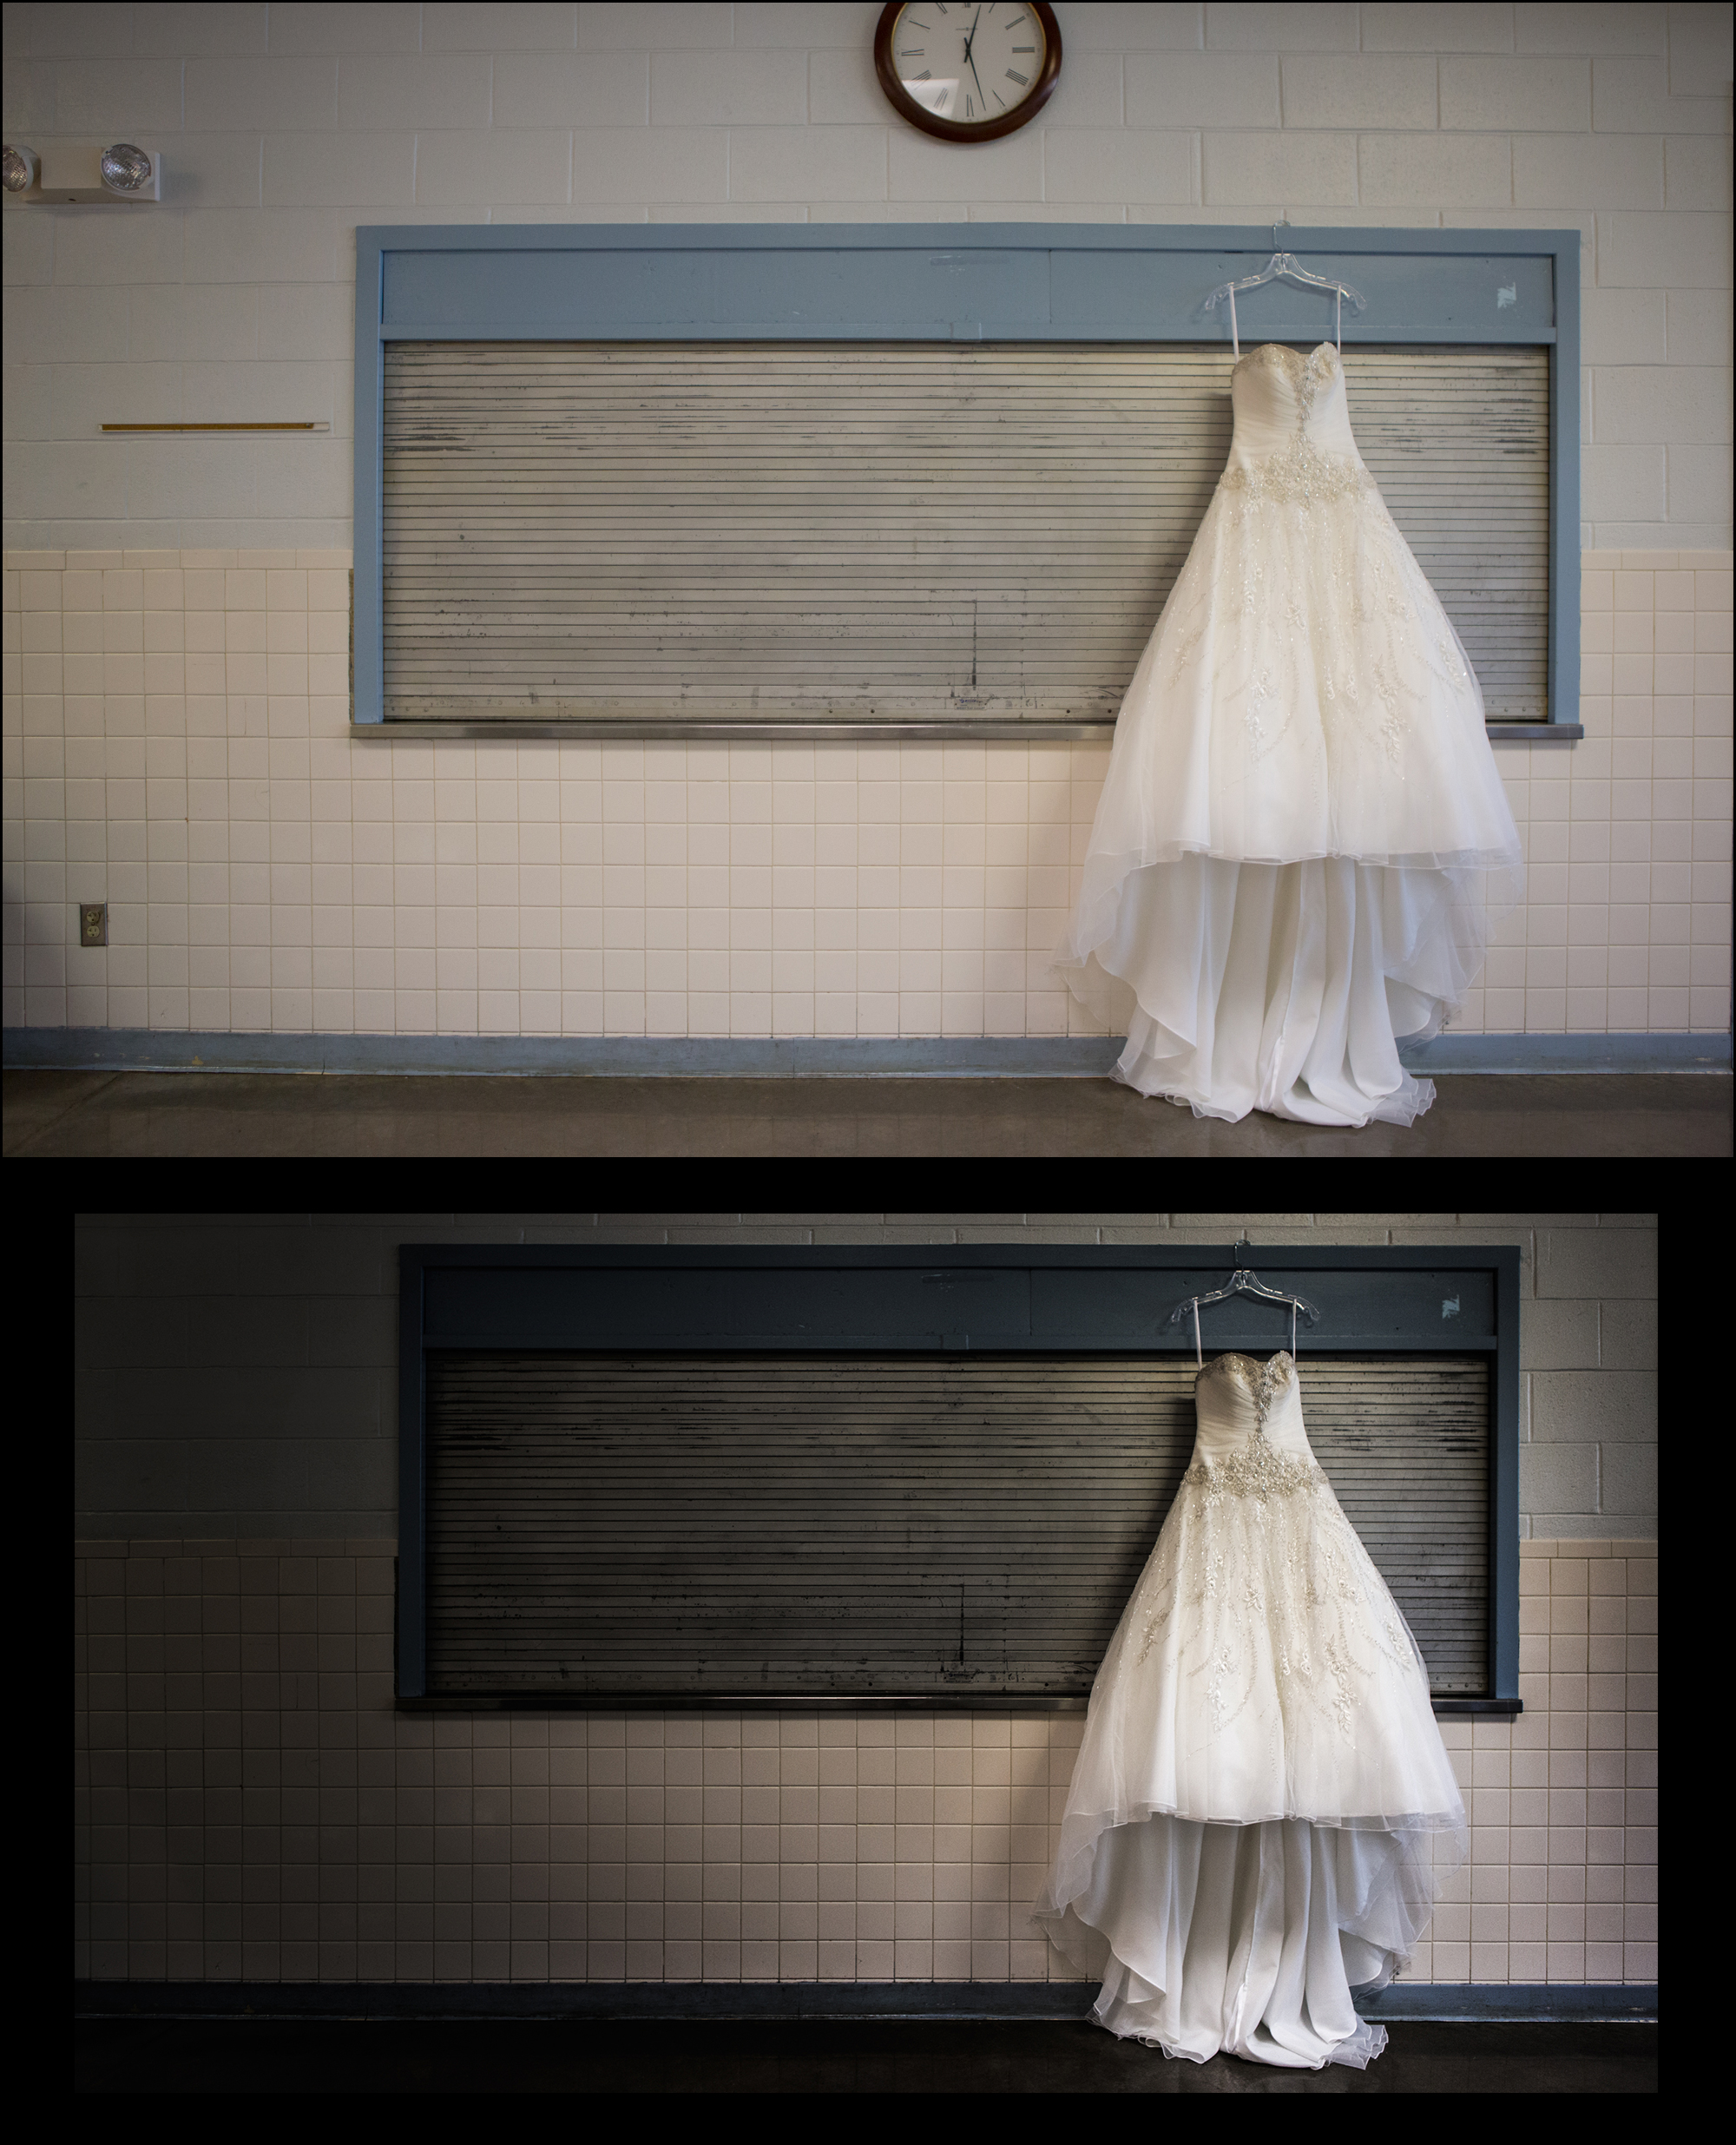 Wedding dress shot in Leavenworth, ks post production from a raw photo to a mastered shot.